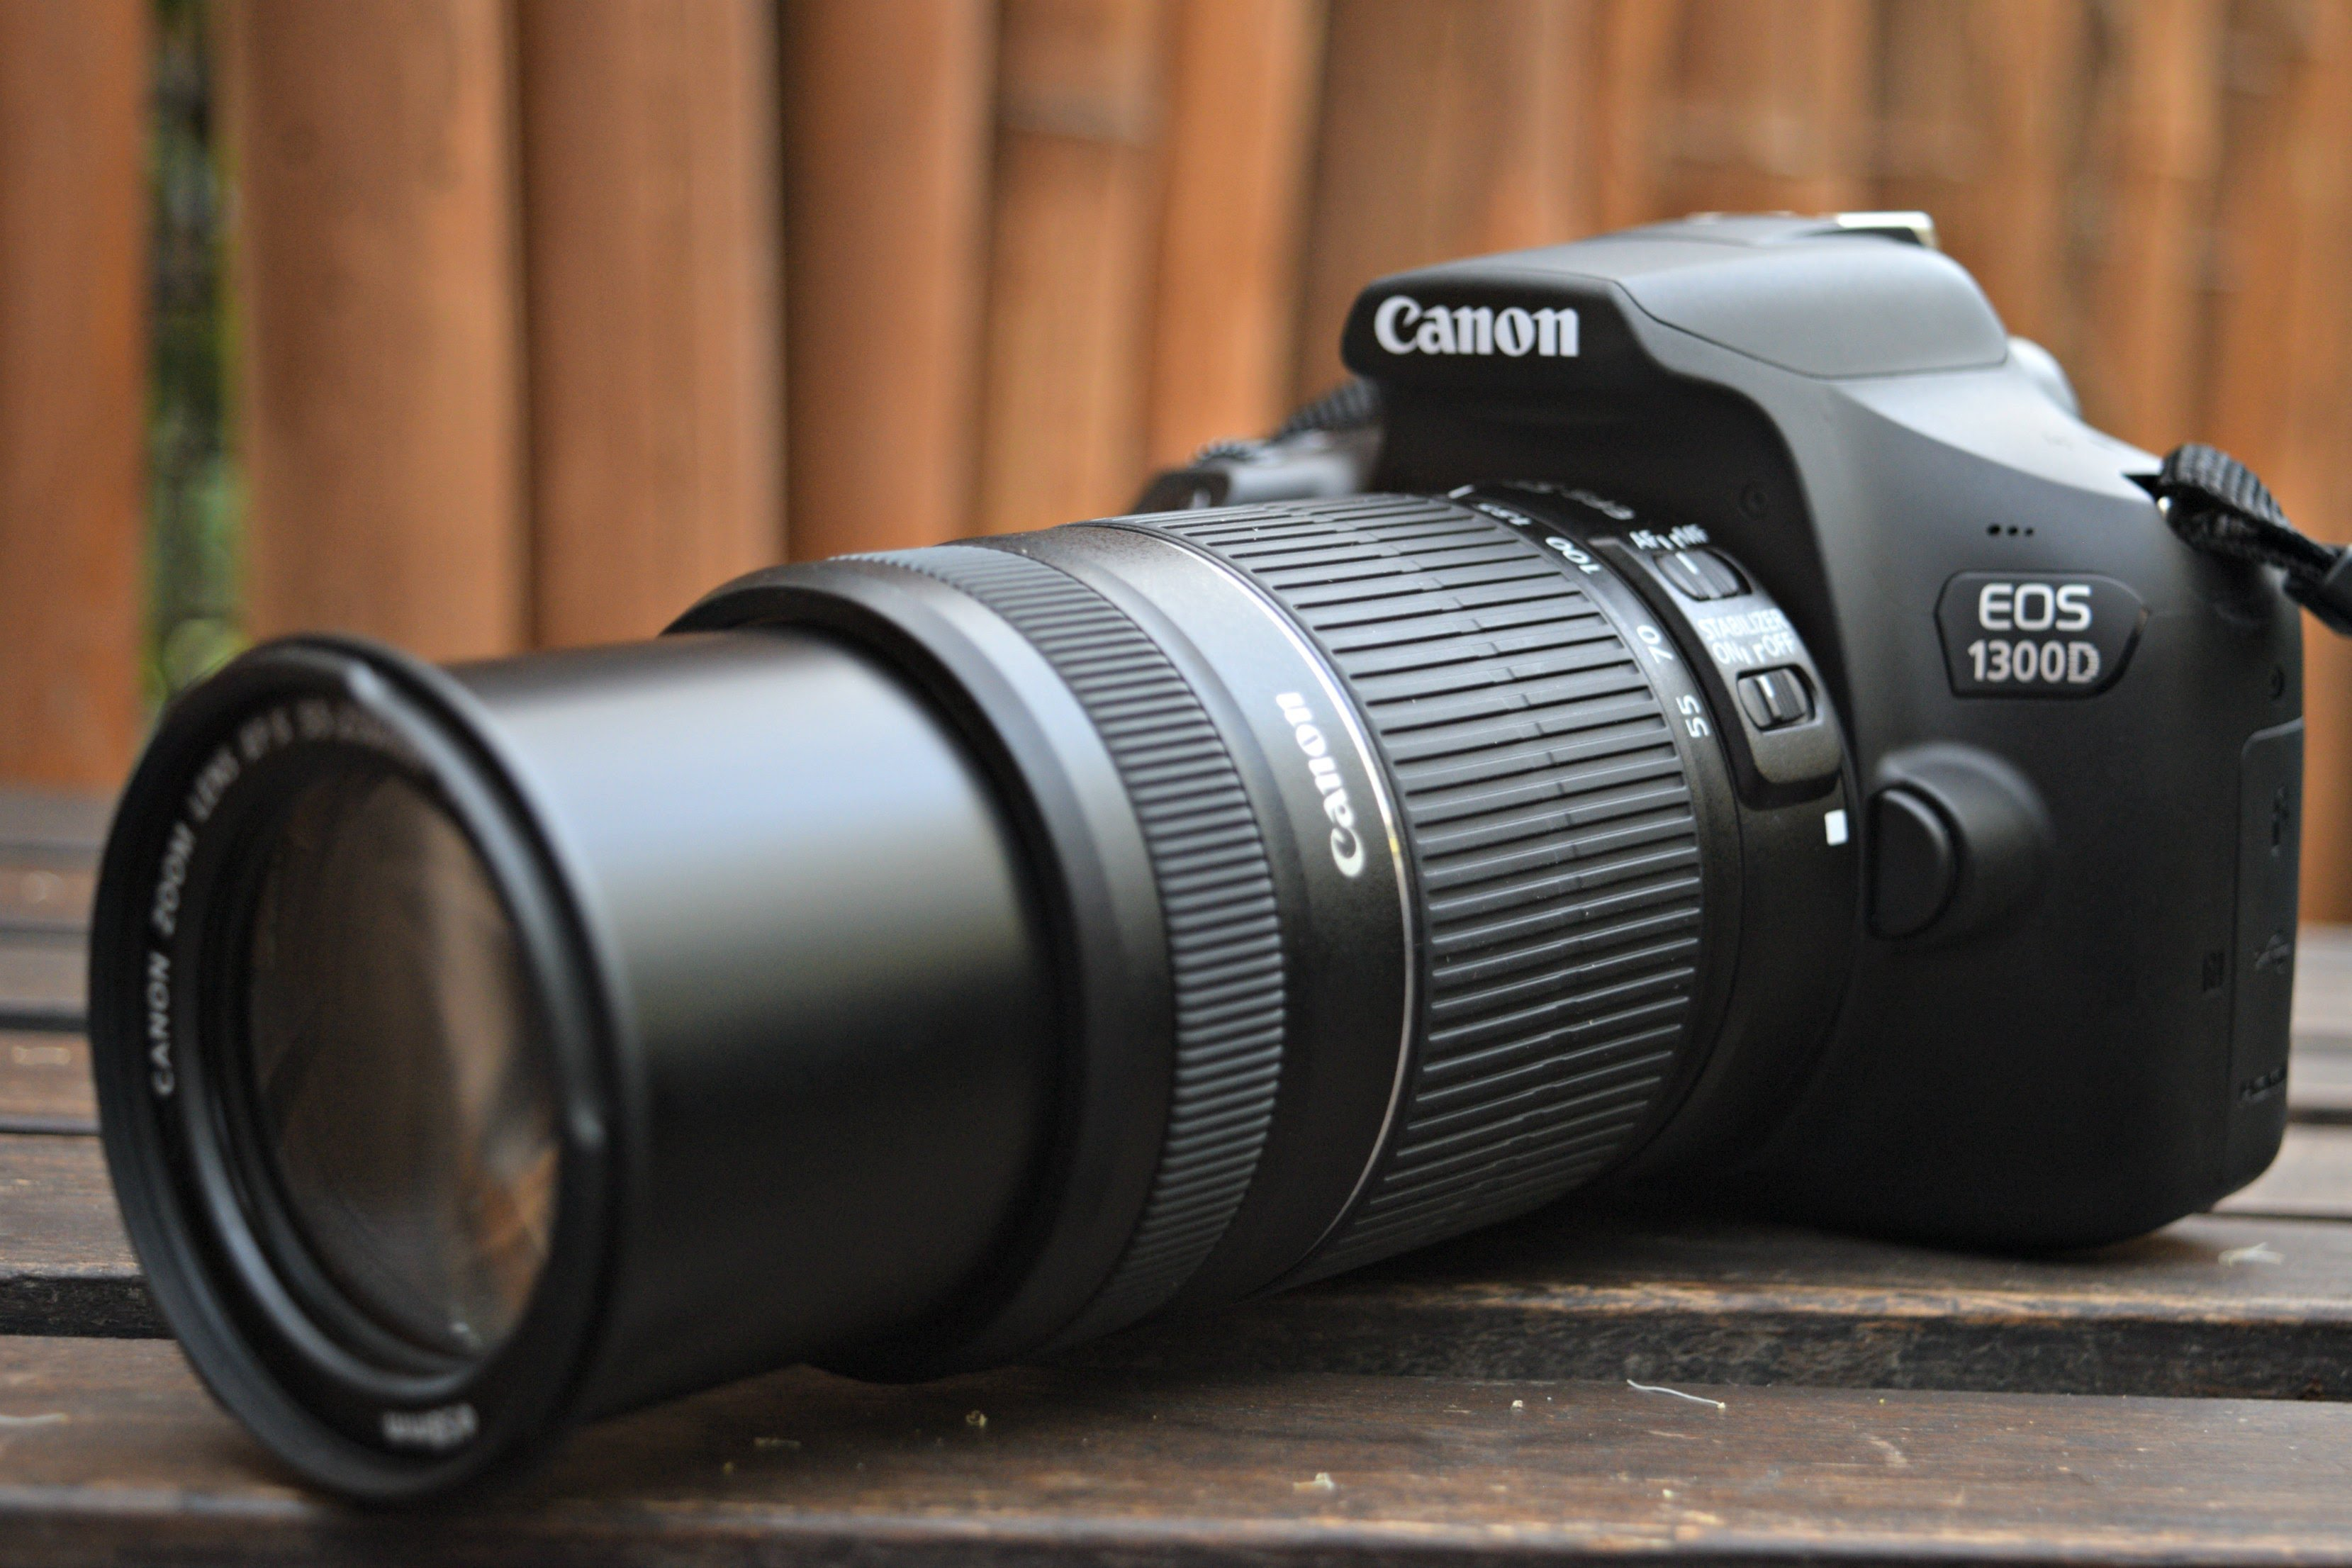 Good , but not beyond exceptions  - CANON EOS 1300D Consumer